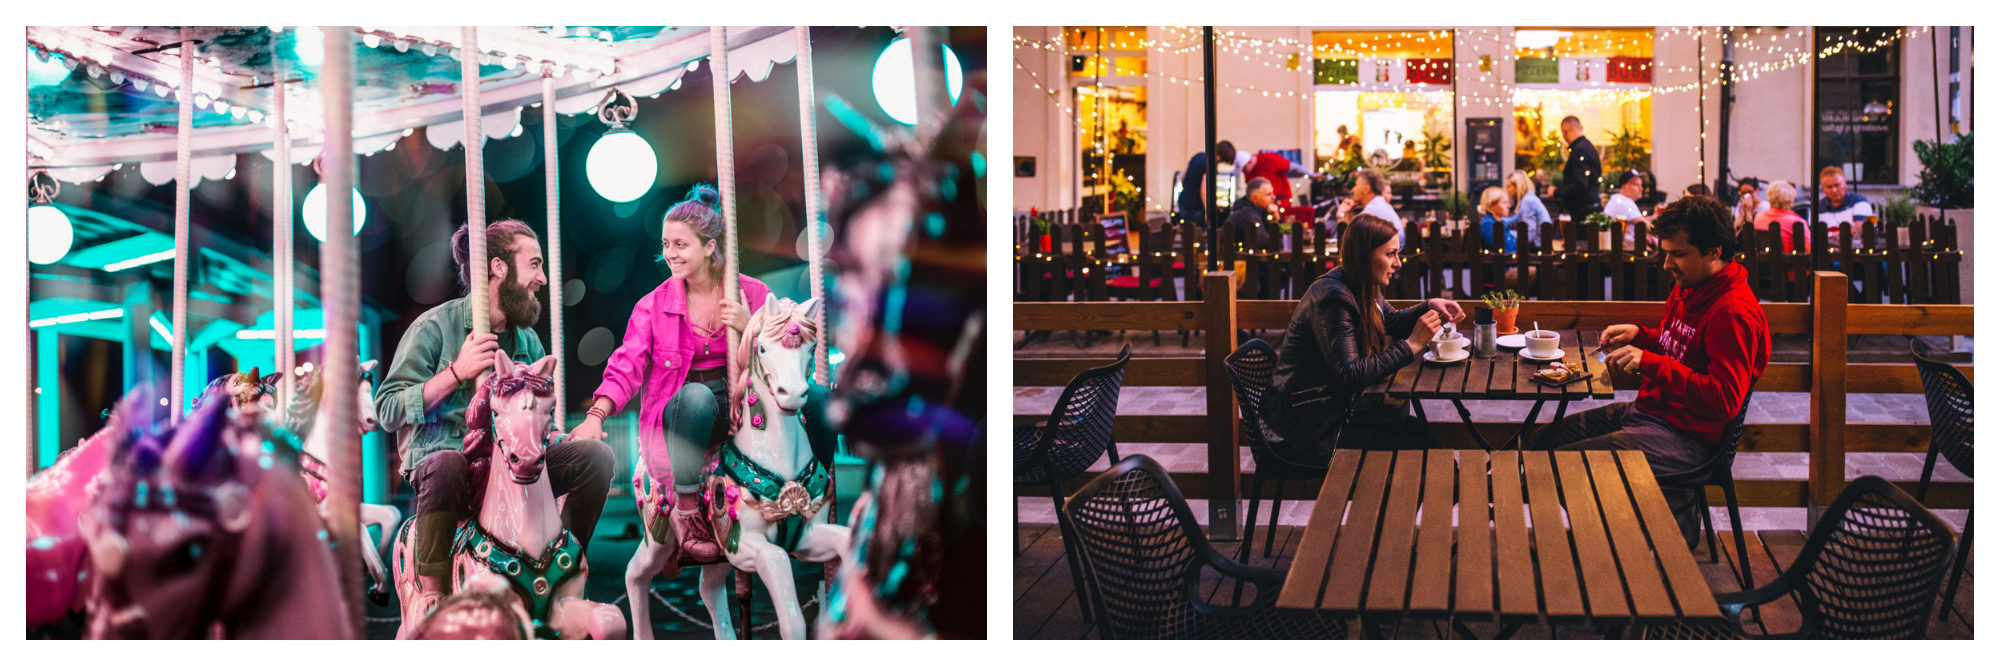 Paris has lots of date spots, including picturesque merry-go-rounds like the one this smiling couple if riding (left), as well as restaurants and bars (right).